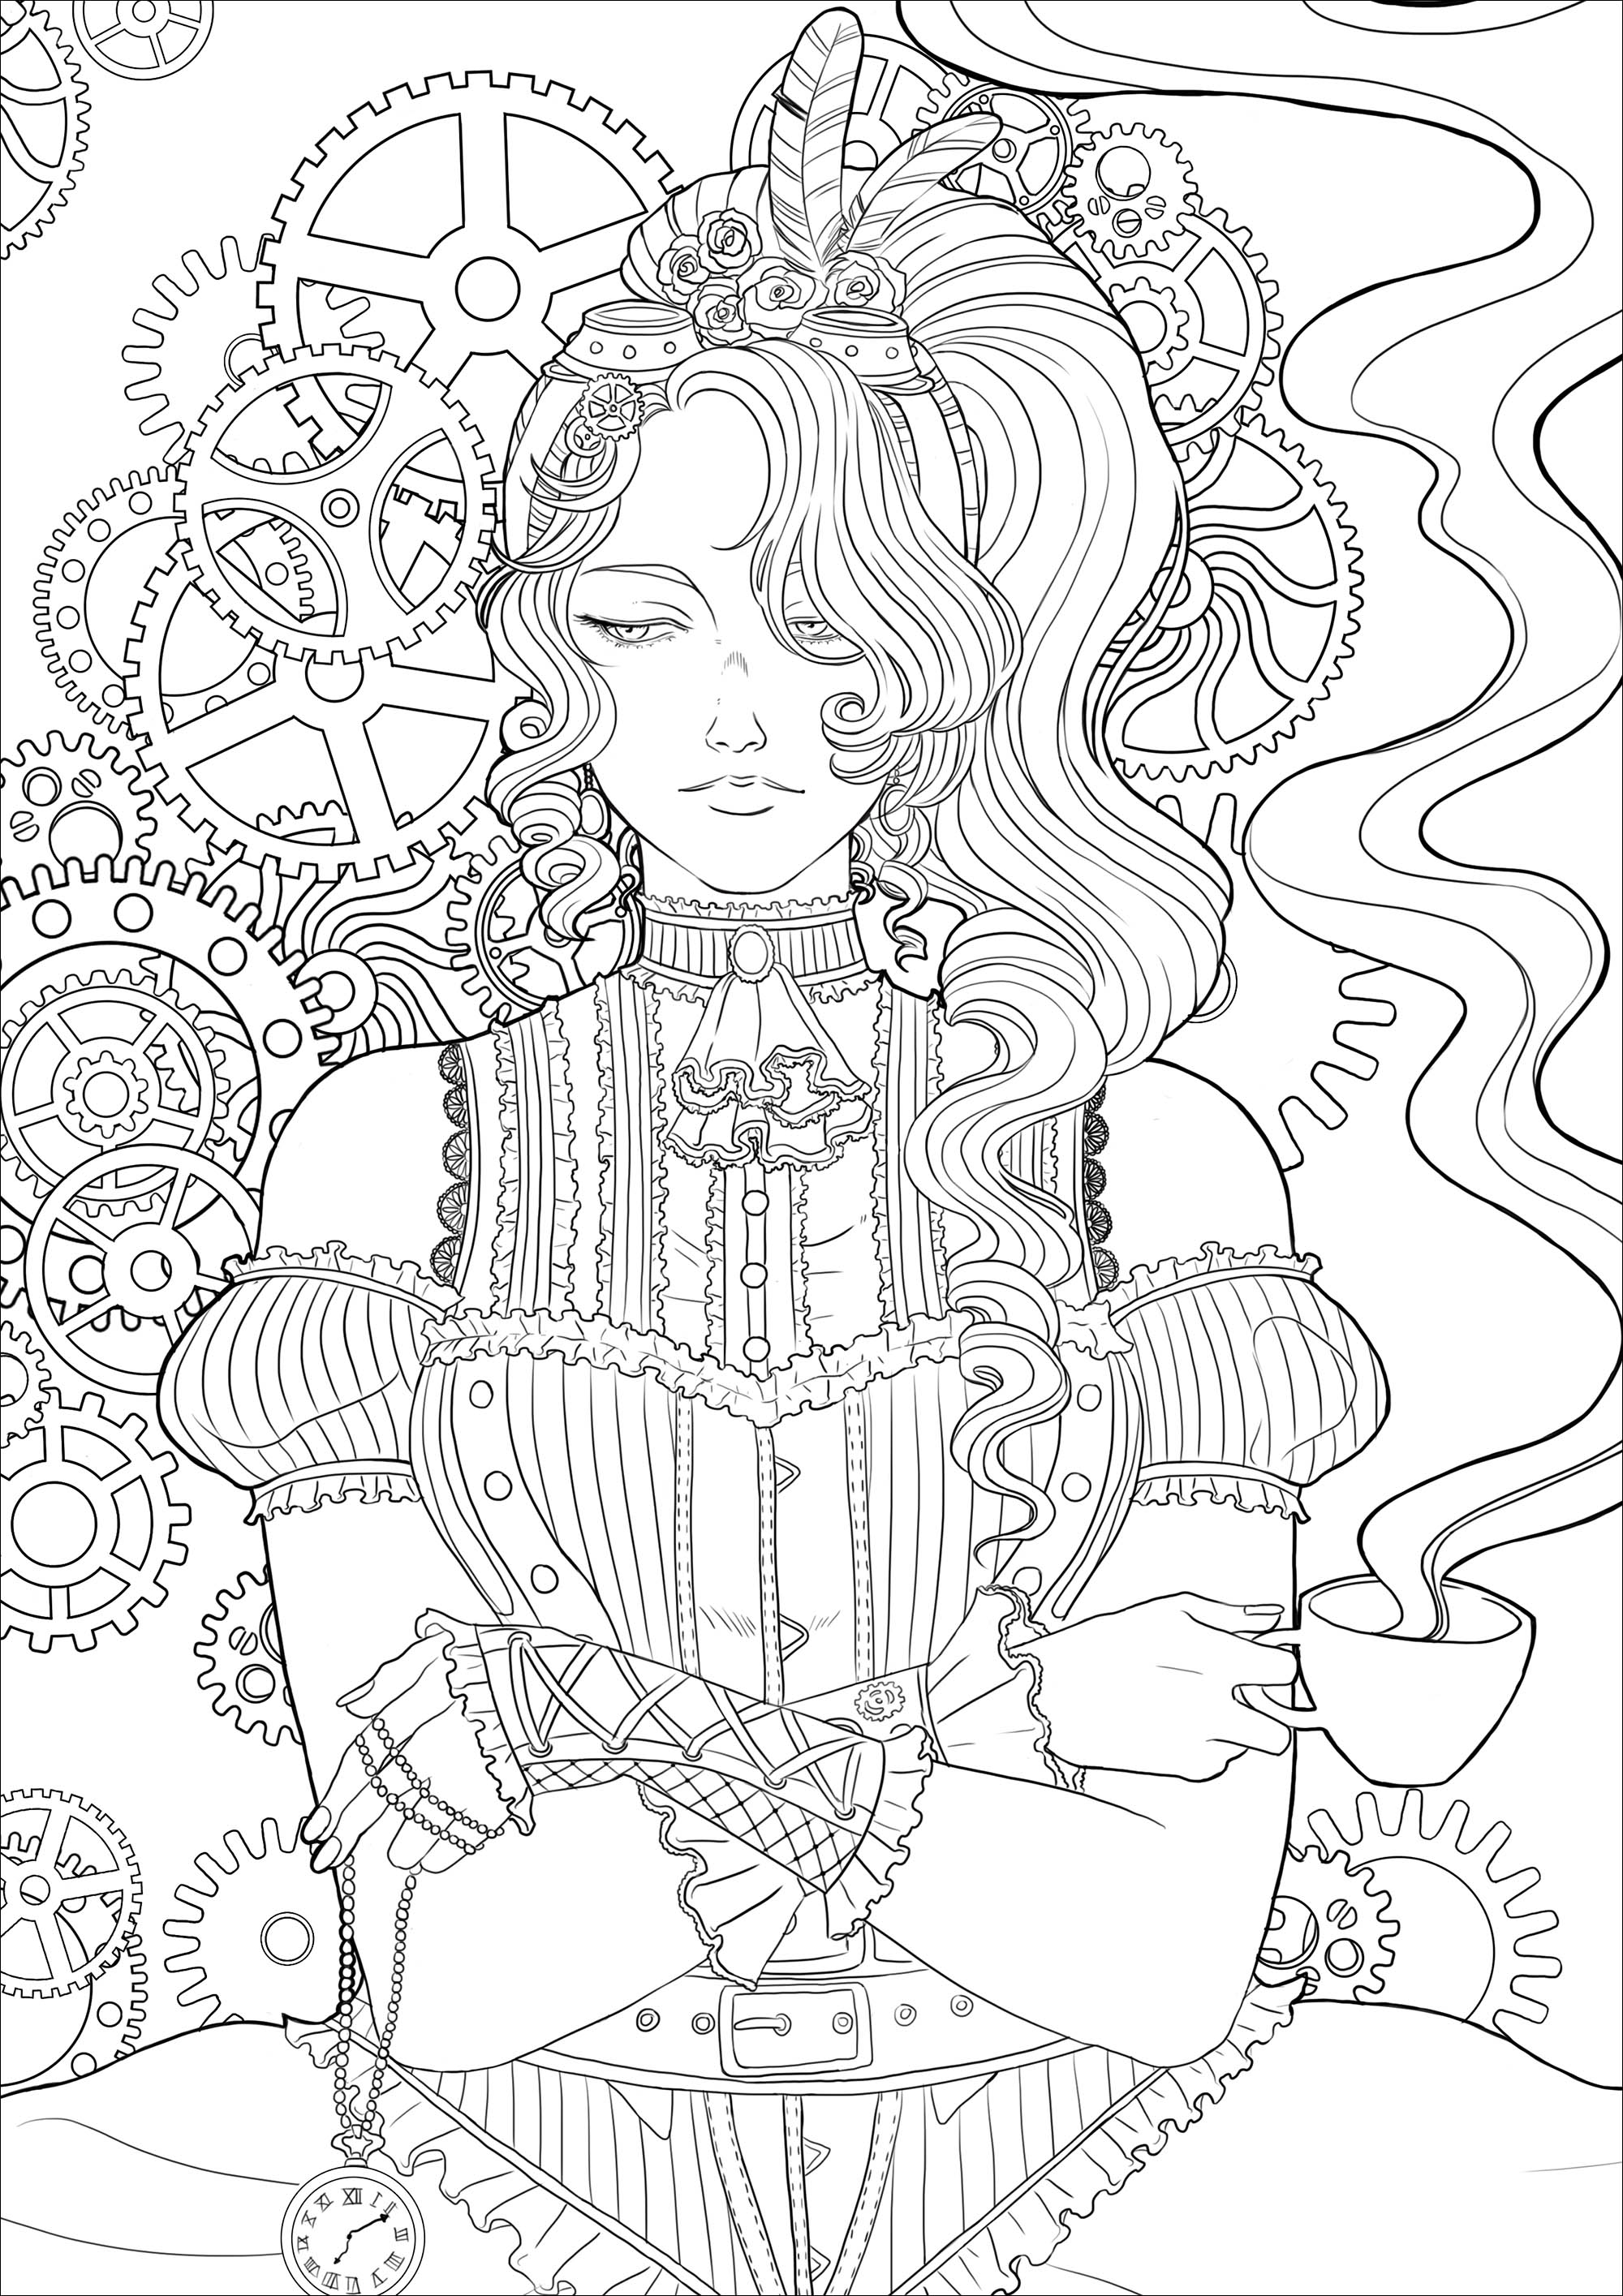 Steampunk Coloring Pages - Coloring Home